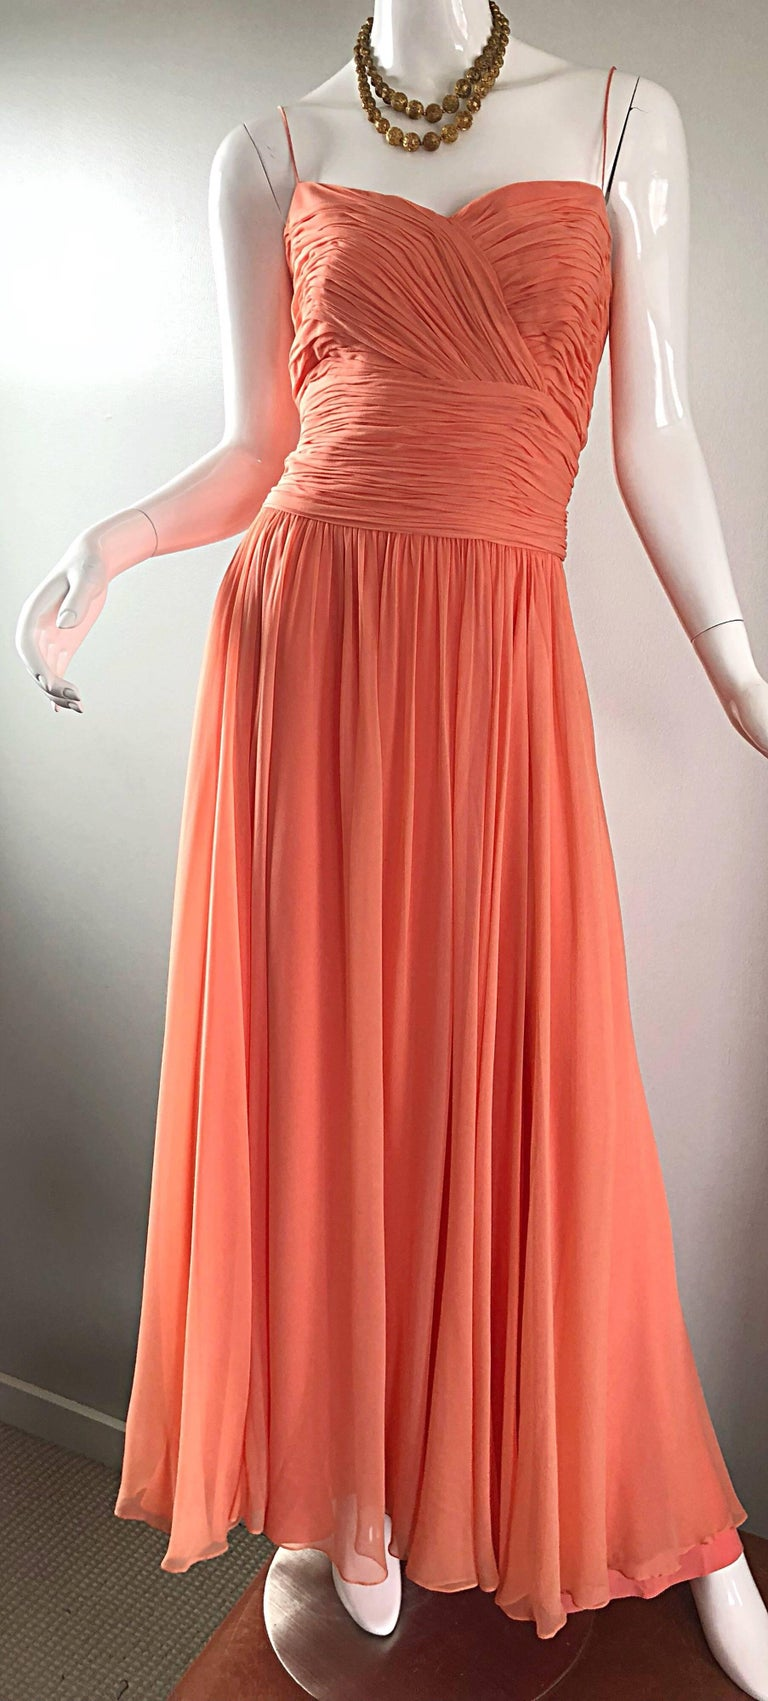 Gorgeous 1950s Saks 5th Ave. Salmon / Coral Pink Silk Chiffon Vintage 50s Gown For Sale 7